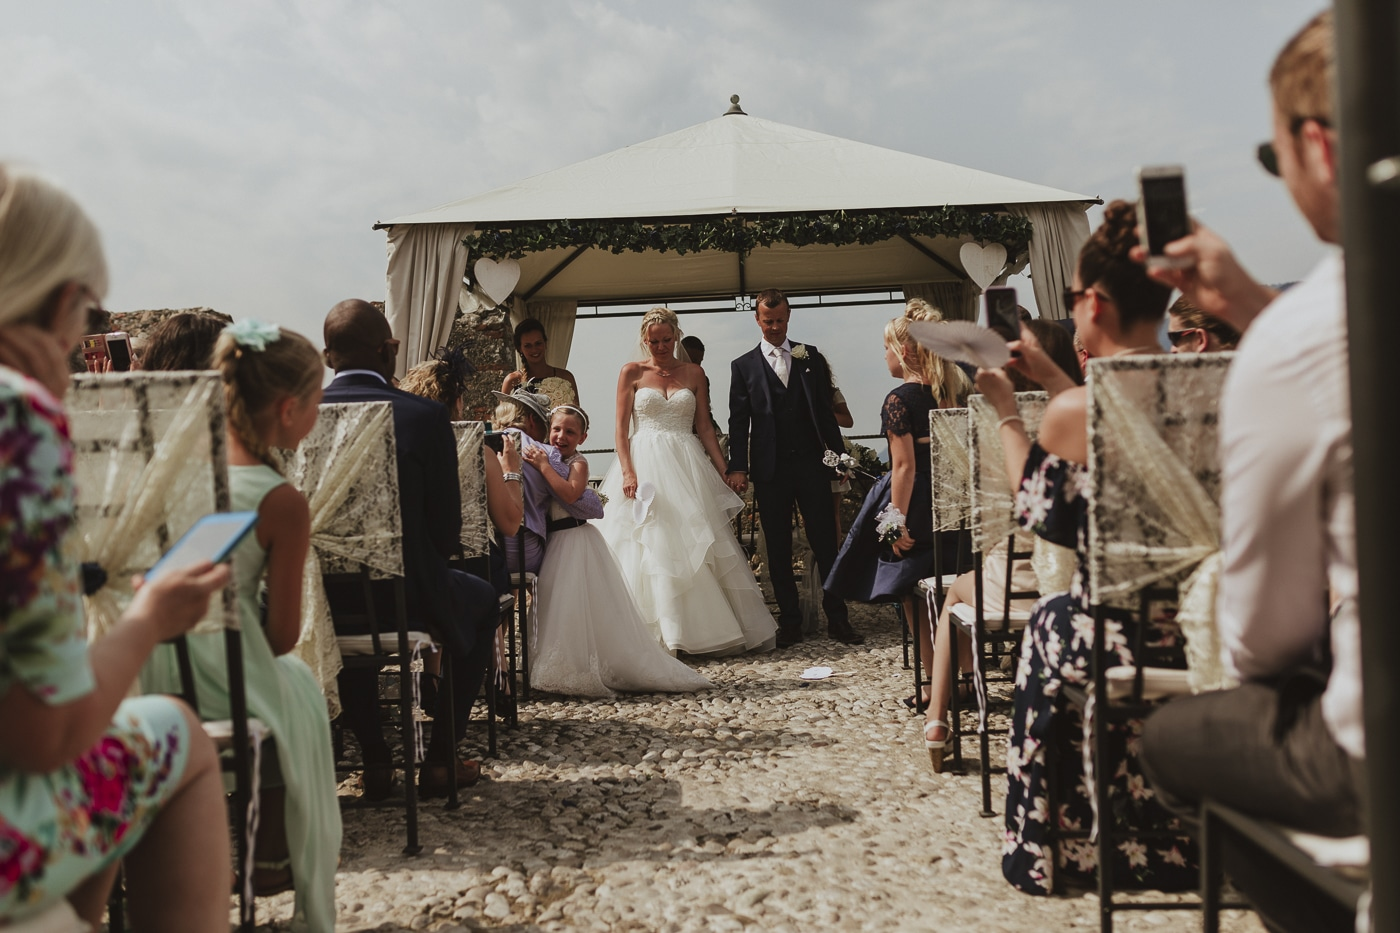 Bride and groom standing at the front of the aisle under a canopy with wedding guests looking on